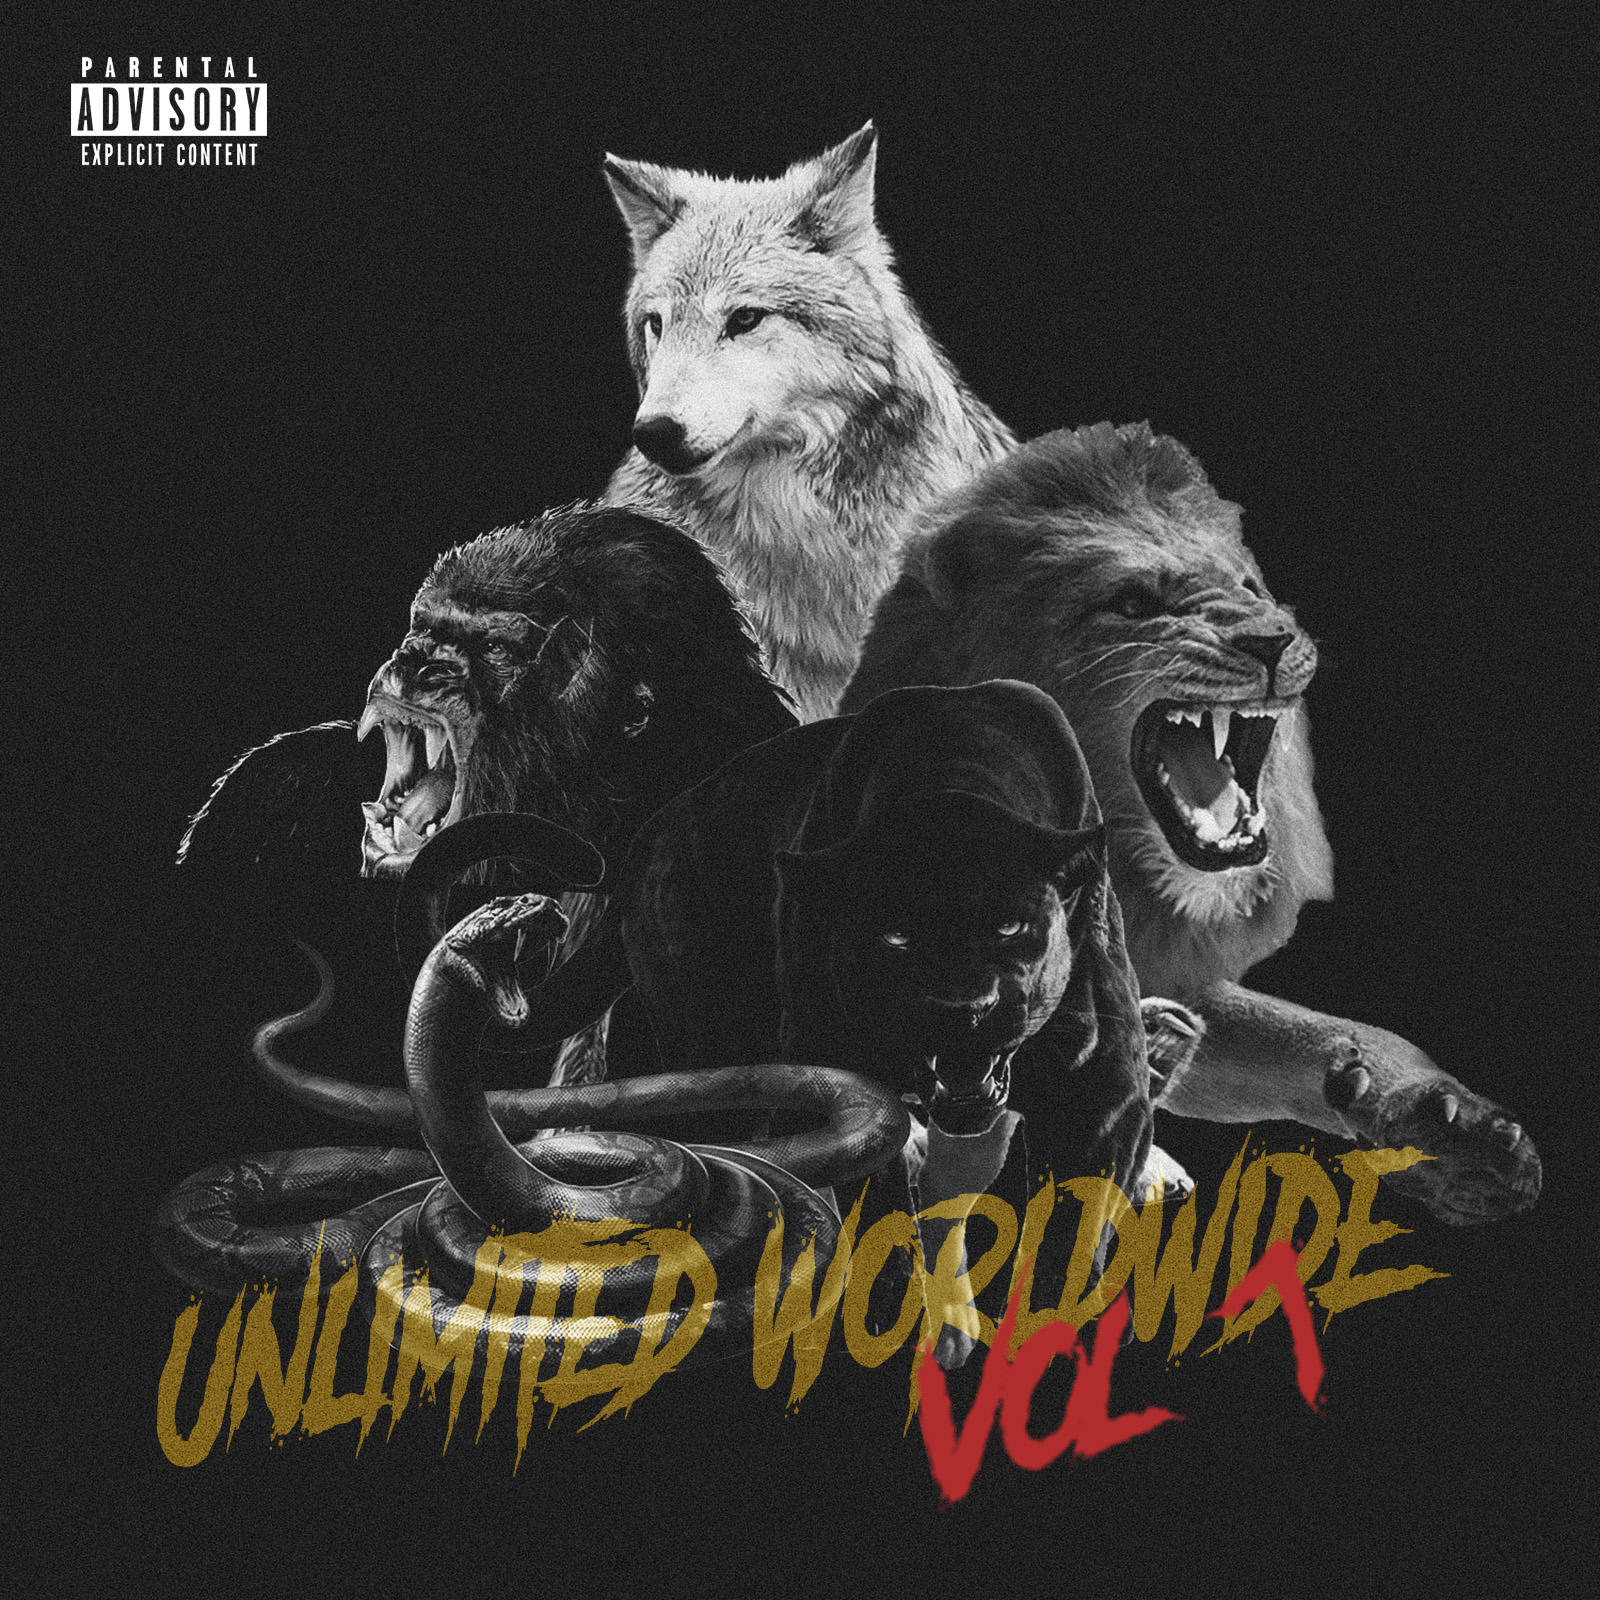 UNLIMITED WORLDWIDE VOL 1 - BY THE ARTIST OF TEAM UNLIMITED